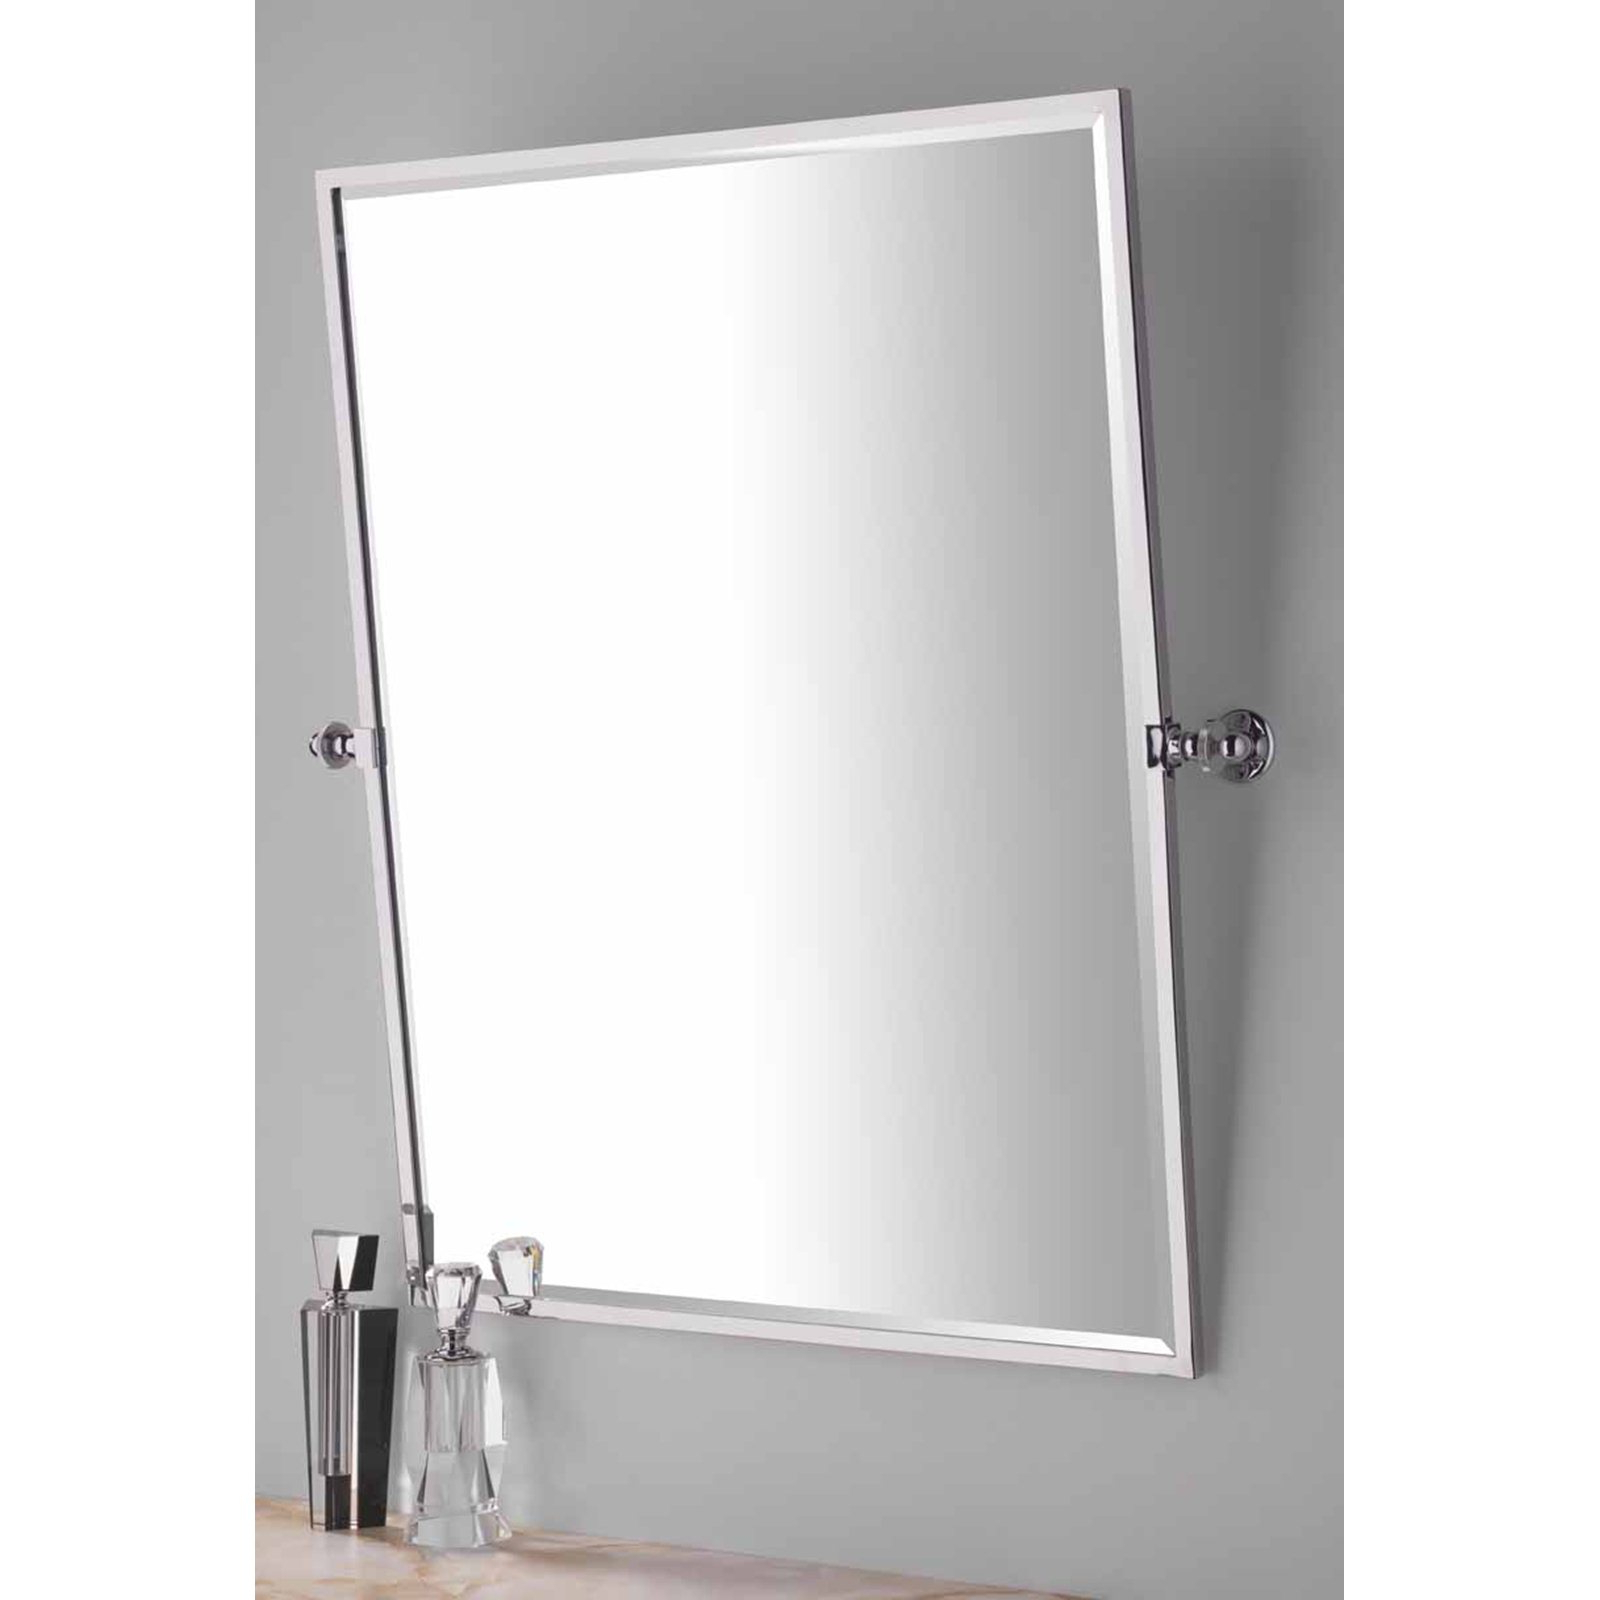 Top 35 Fabulous Cheap Decorative Mirrors Starburst Mirror Intended For Latest Tilting Wall Mirrors (View 18 of 20)